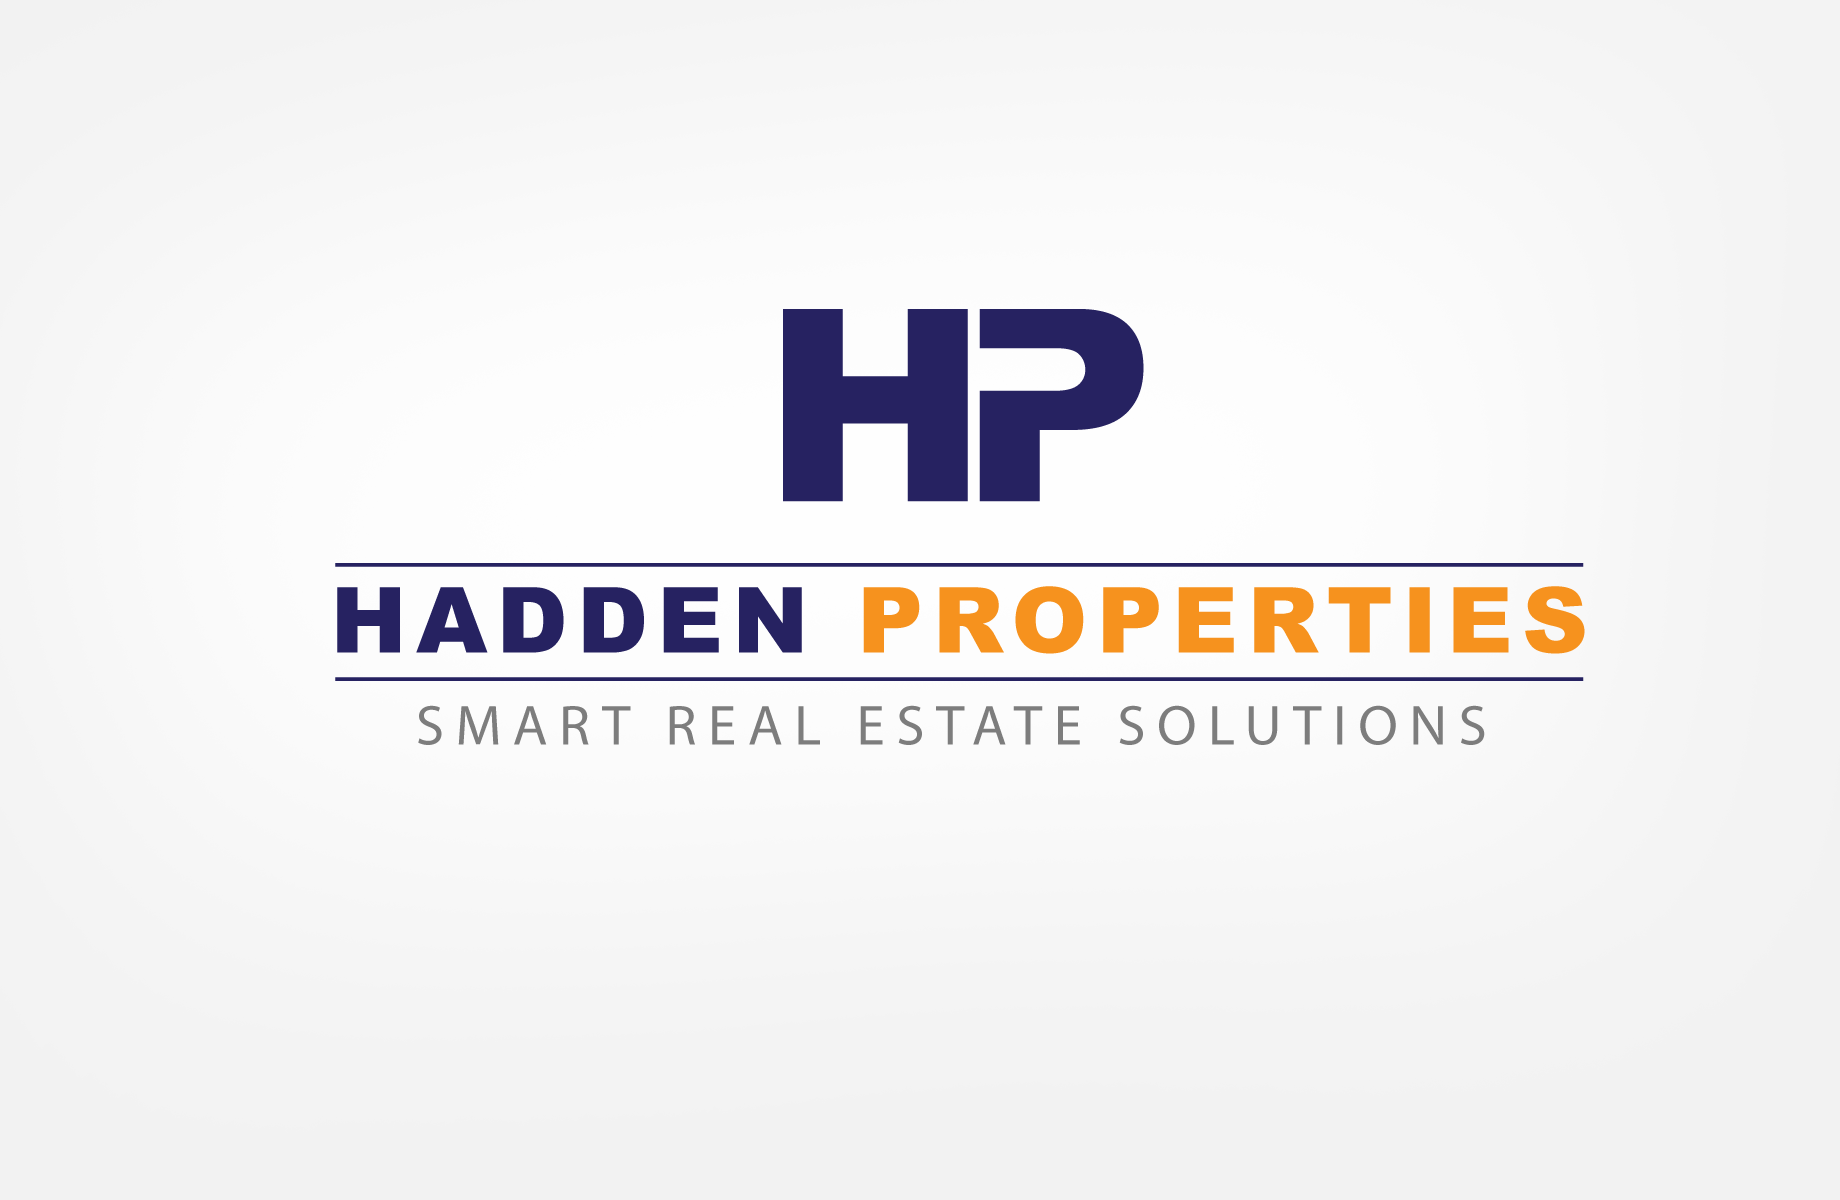 Logo Design by Jan Chua - Entry No. 138 in the Logo Design Contest Artistic Logo Design for Hadden Properties.